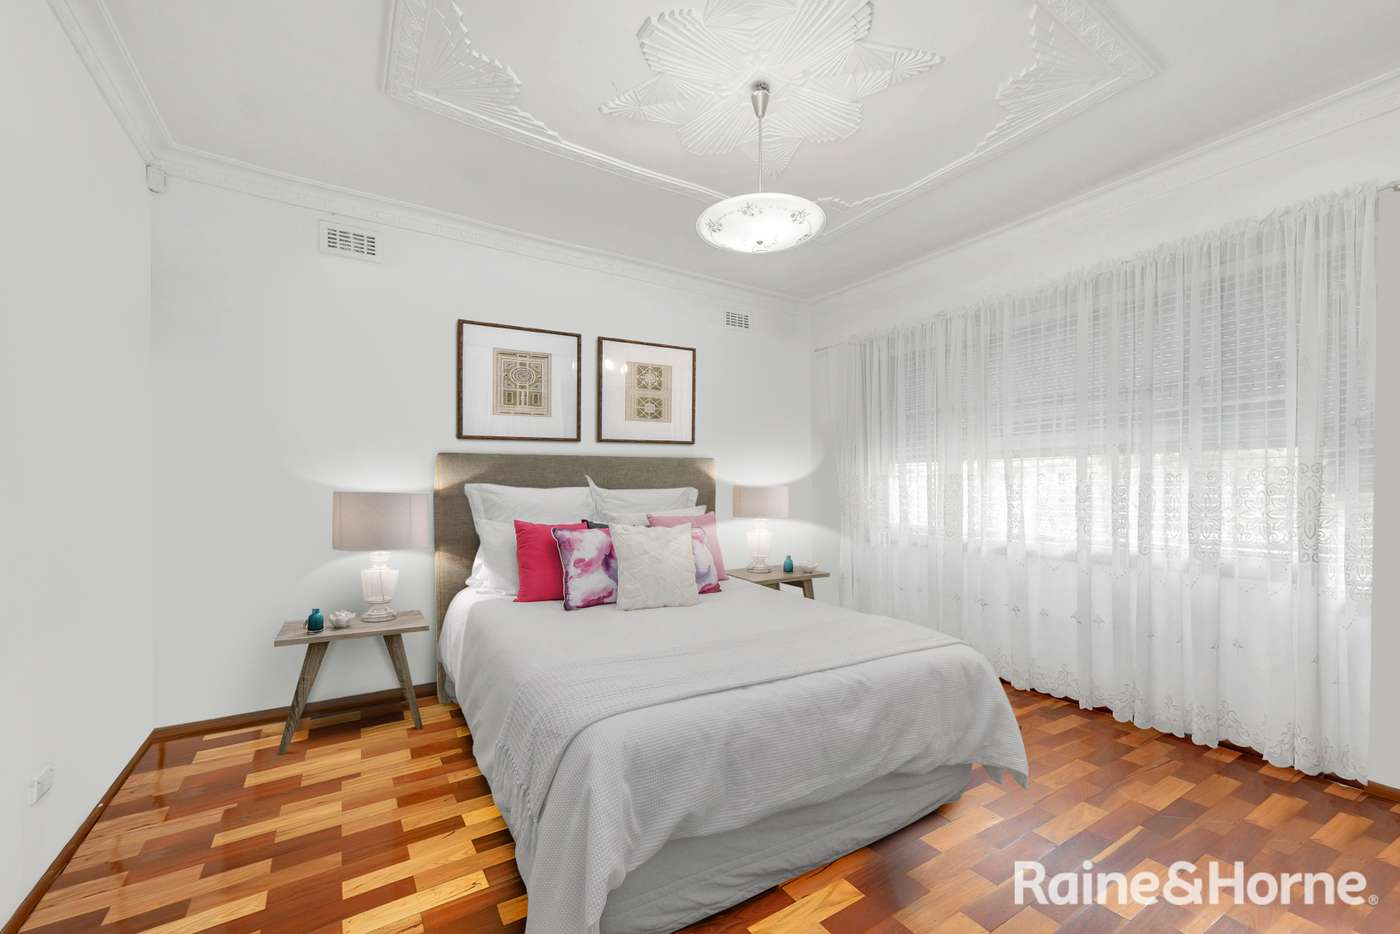 Fifth view of Homely house listing, 167 Rathcown Road, Reservoir VIC 3073